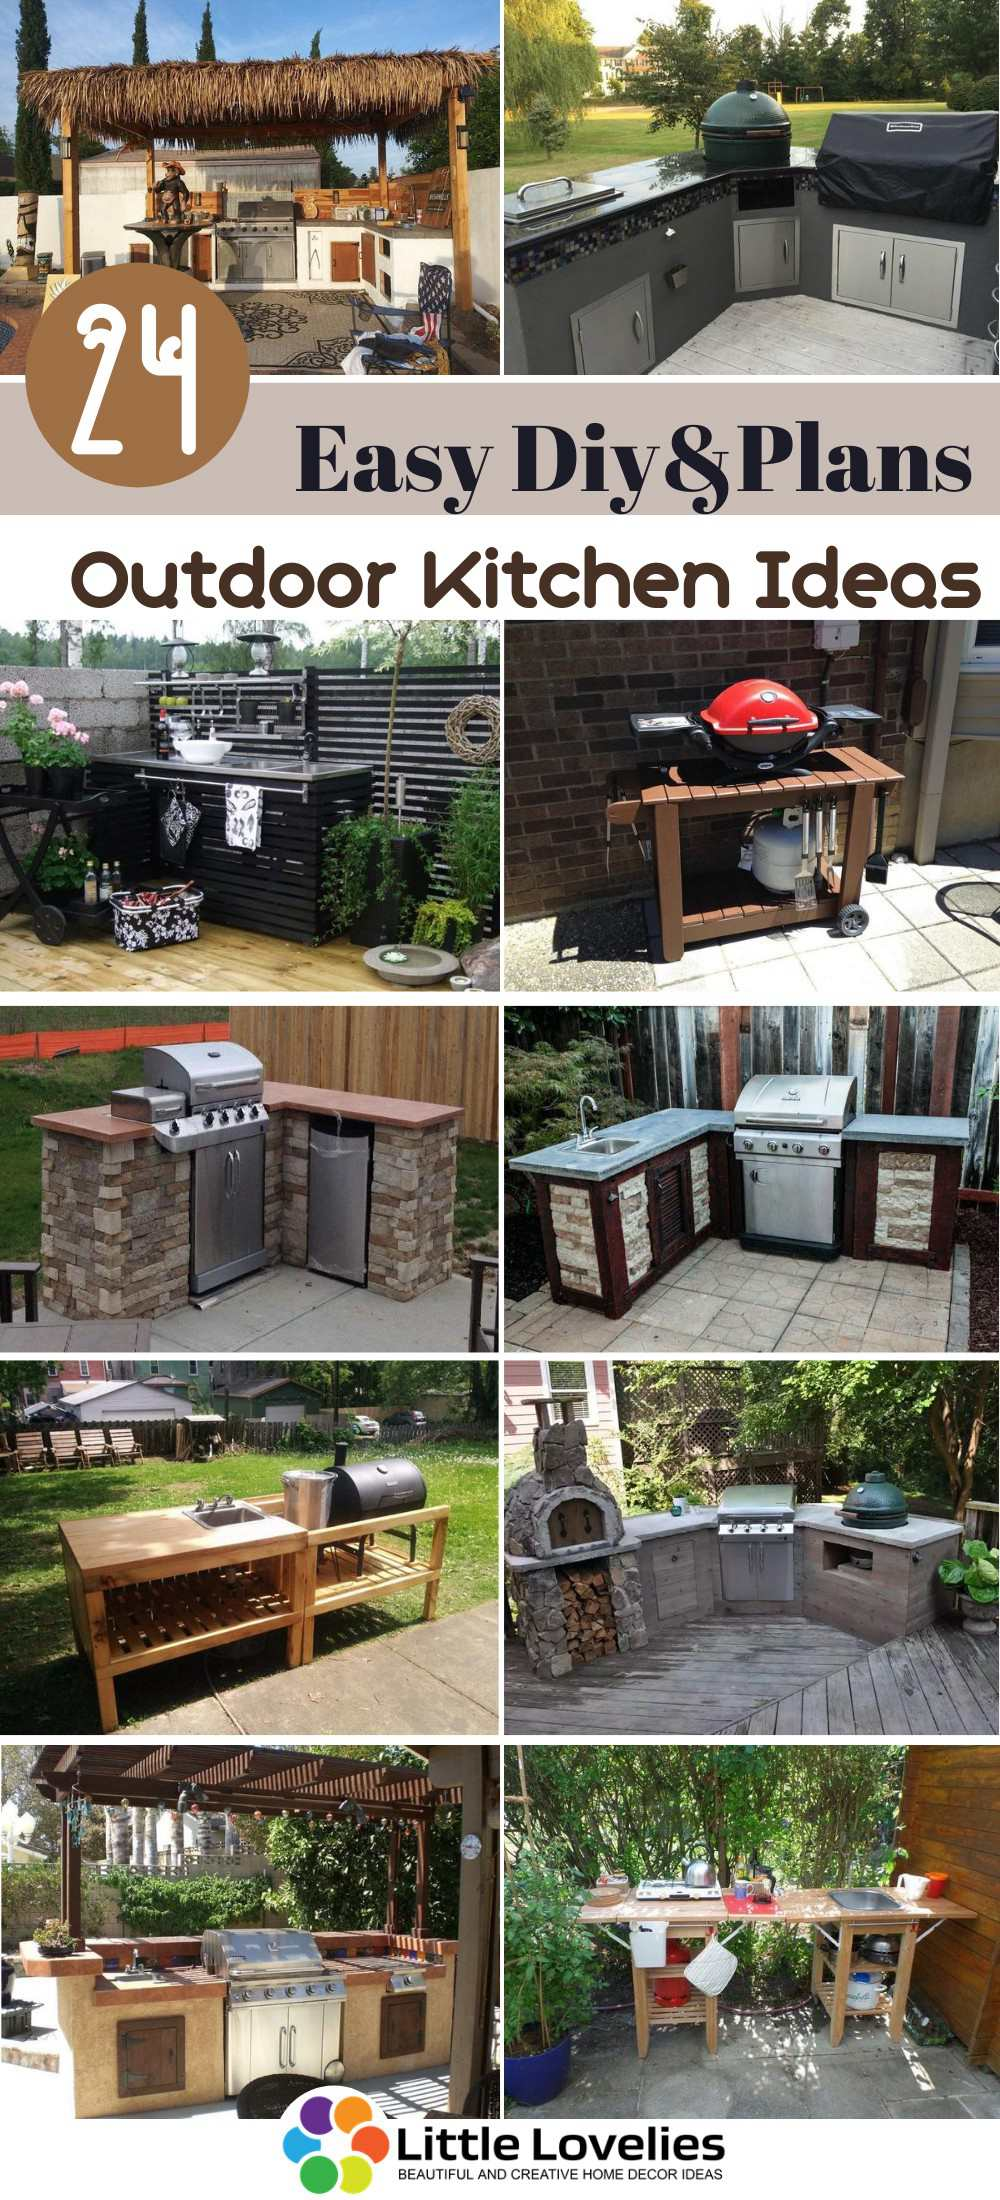 24 DIY Outdoor Kitchen Ideas and Plans